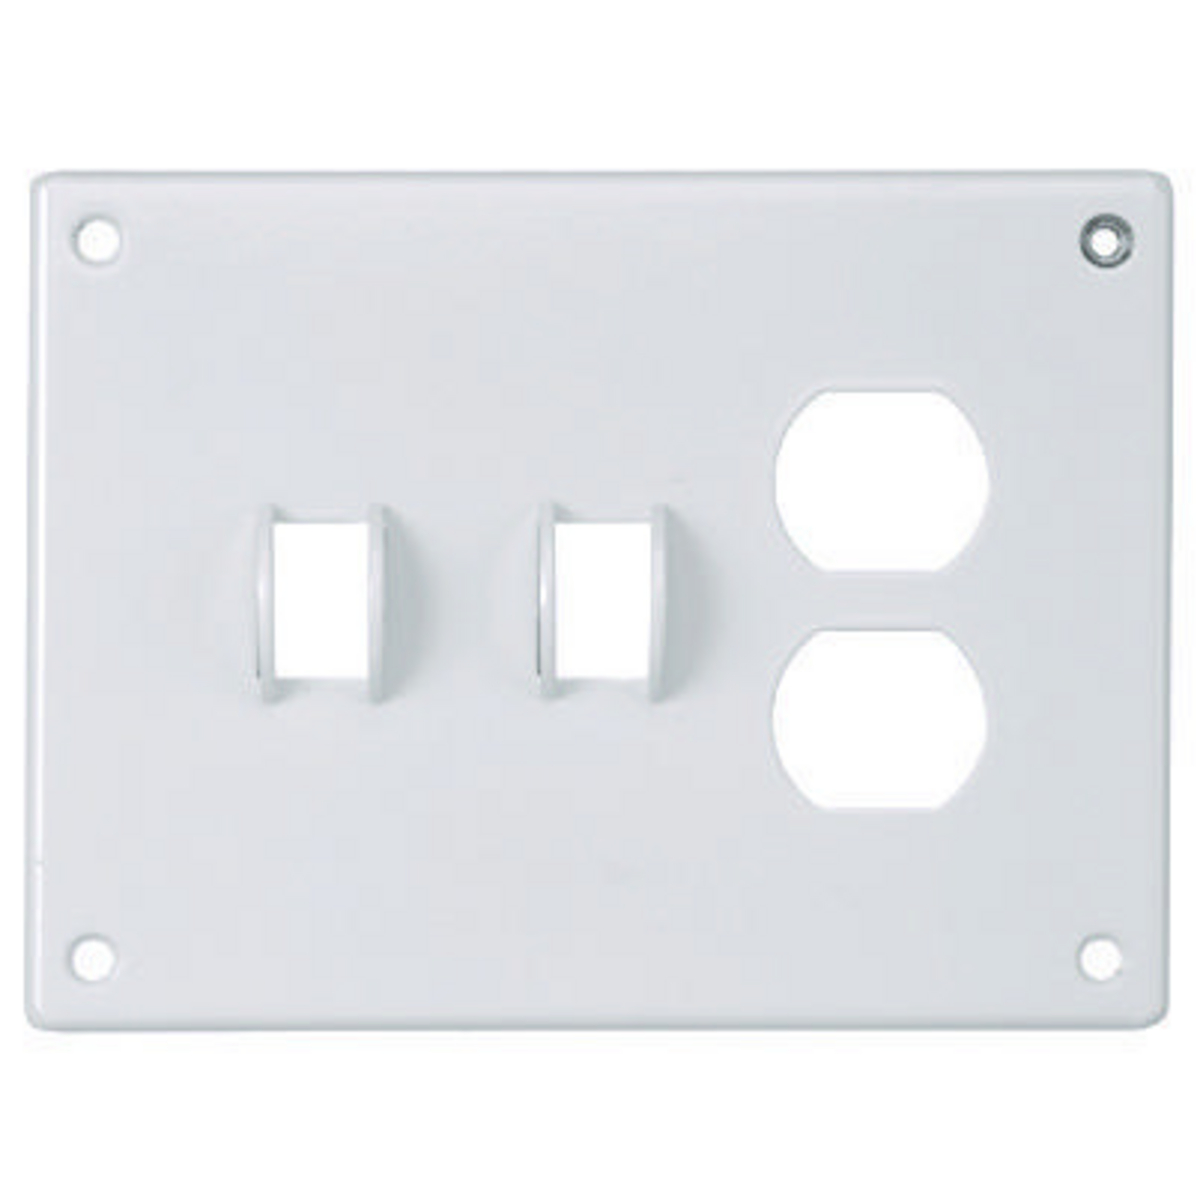 Hubbell SWP28 SEC WALLPLATE, 3-G, Sw/Sw/DUP, WH